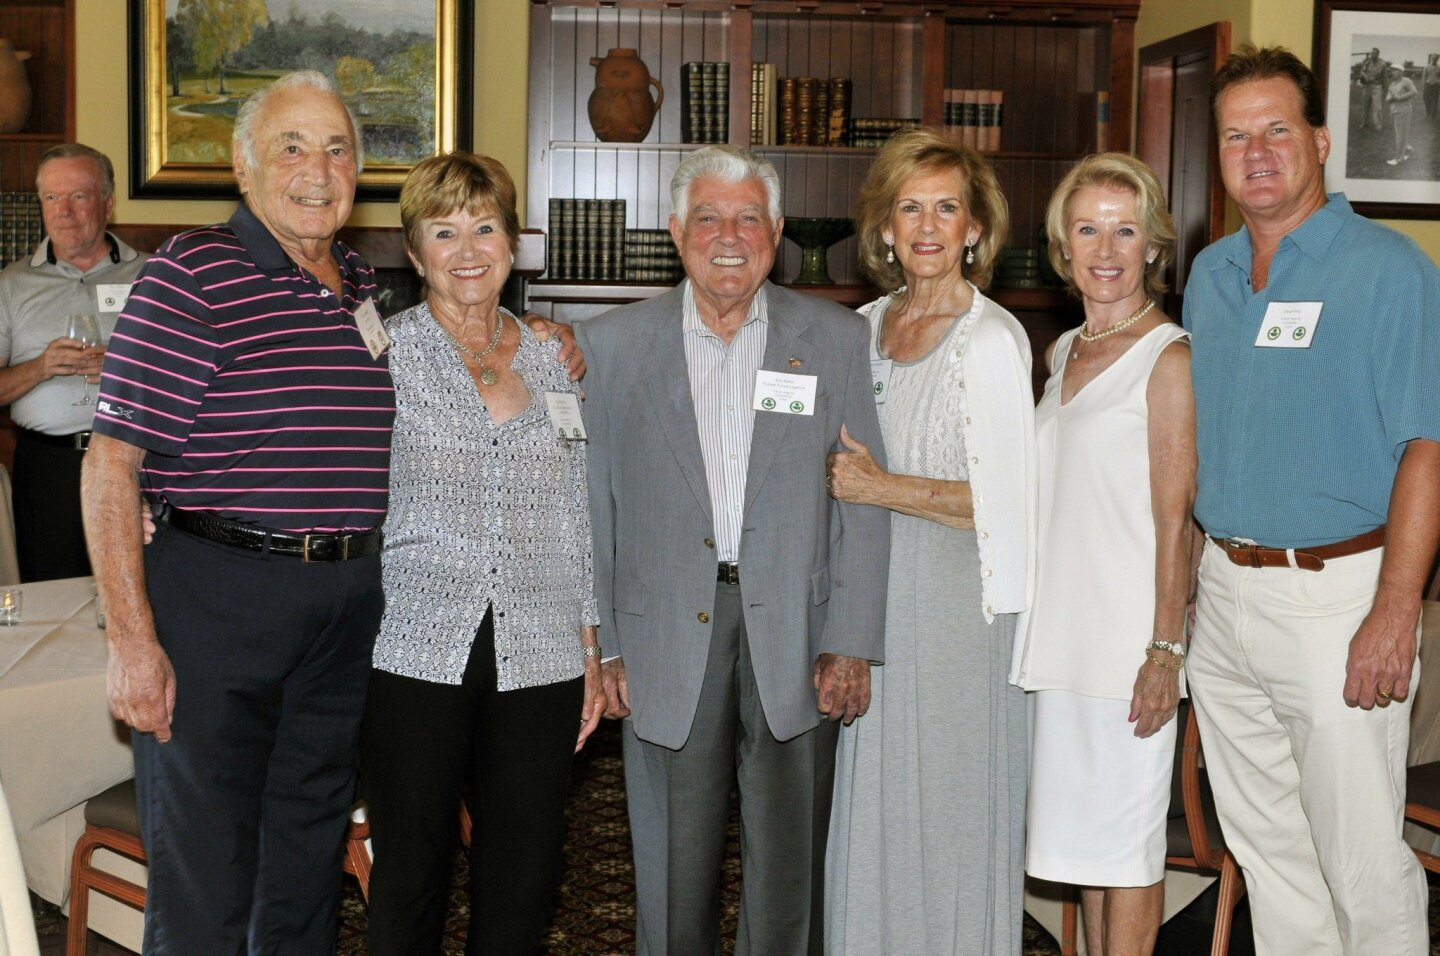 Major donor Dan Green, Bev Boyce, major donor/co-founder Bob Baker, MaryAnn Smith, trustee Dita Baker, selection committee member Steve King